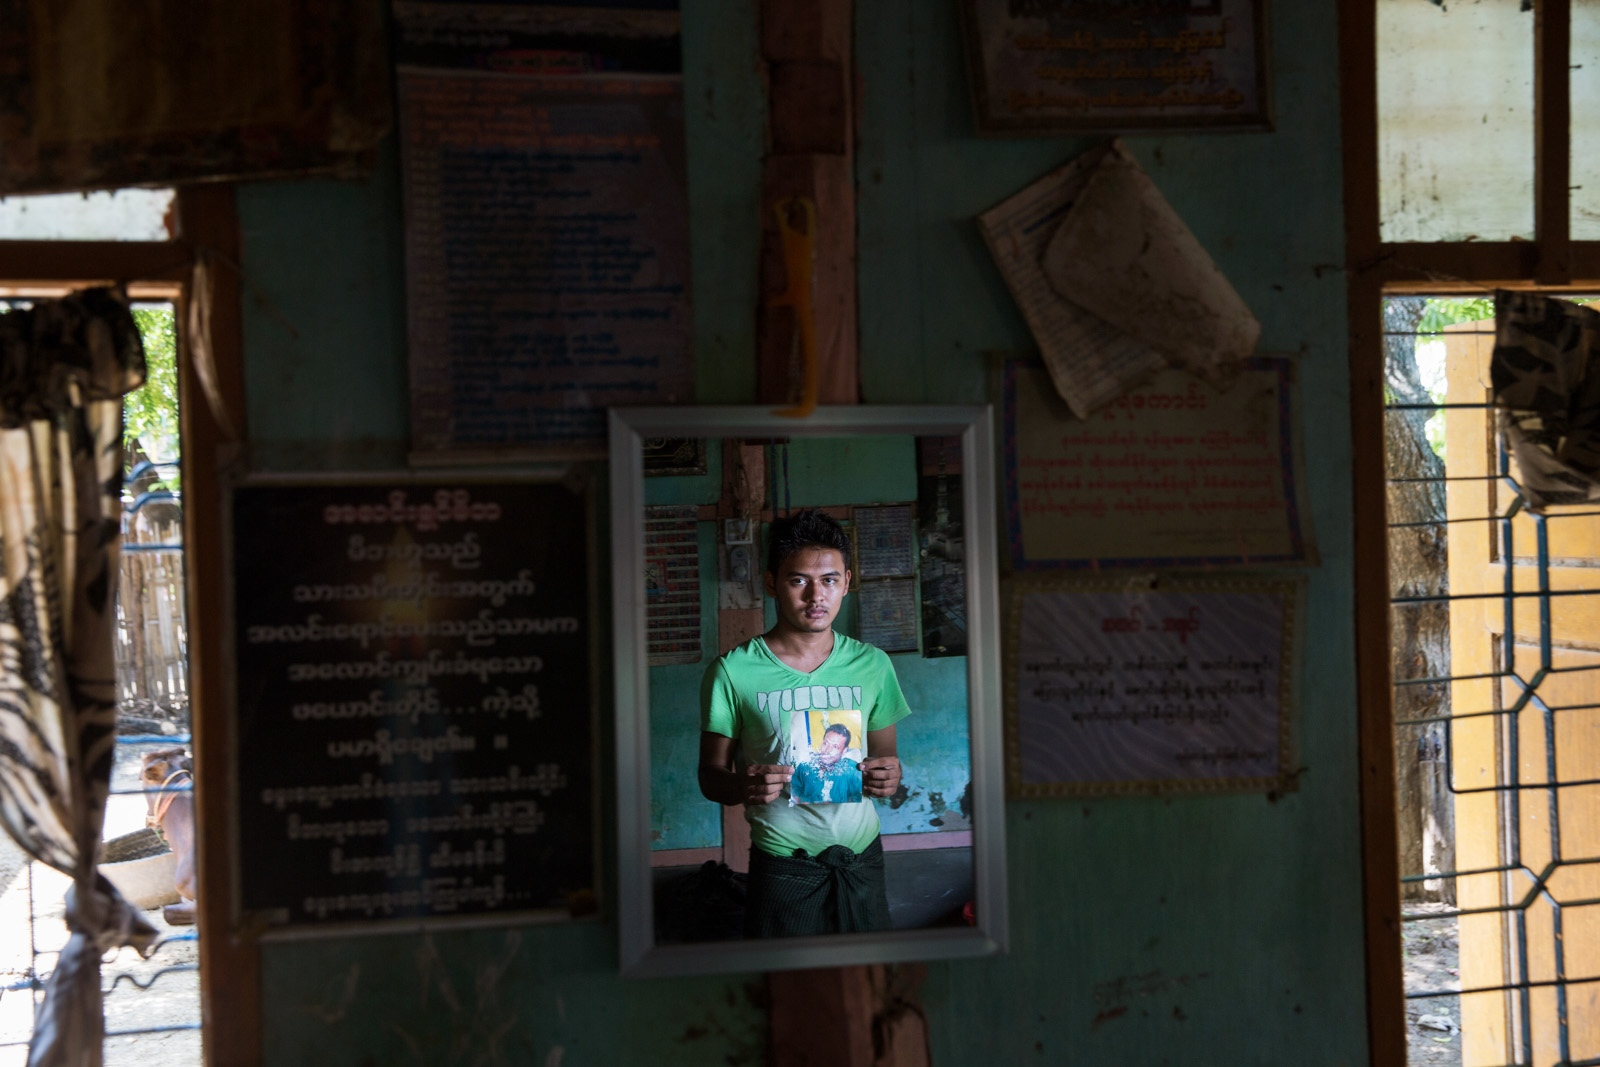 The nephew of arbitrarily detained Soe Min Naing, 37, holds his uncle's portrait. Myanmar military intelligence arrested Soe Min Naing, 26, while he was traveling to attend a wedding in Kunhein, Shan State on August 4, 2014. On January 12, 2015, the Taunggyi District Court sentenced him in a trial that failed to meet fair trial standards to 14 years' imprisonment with hard labor under sections 5(J) and 5(L) of the 1950 Emergency Provisions Act. In October 2016, the Myanmar government repealed the notoriously controversial 1950 Emergency Provisions Act, yet Soe Min Naing remains detained in Myaung Mya prison under the now defunct Act.